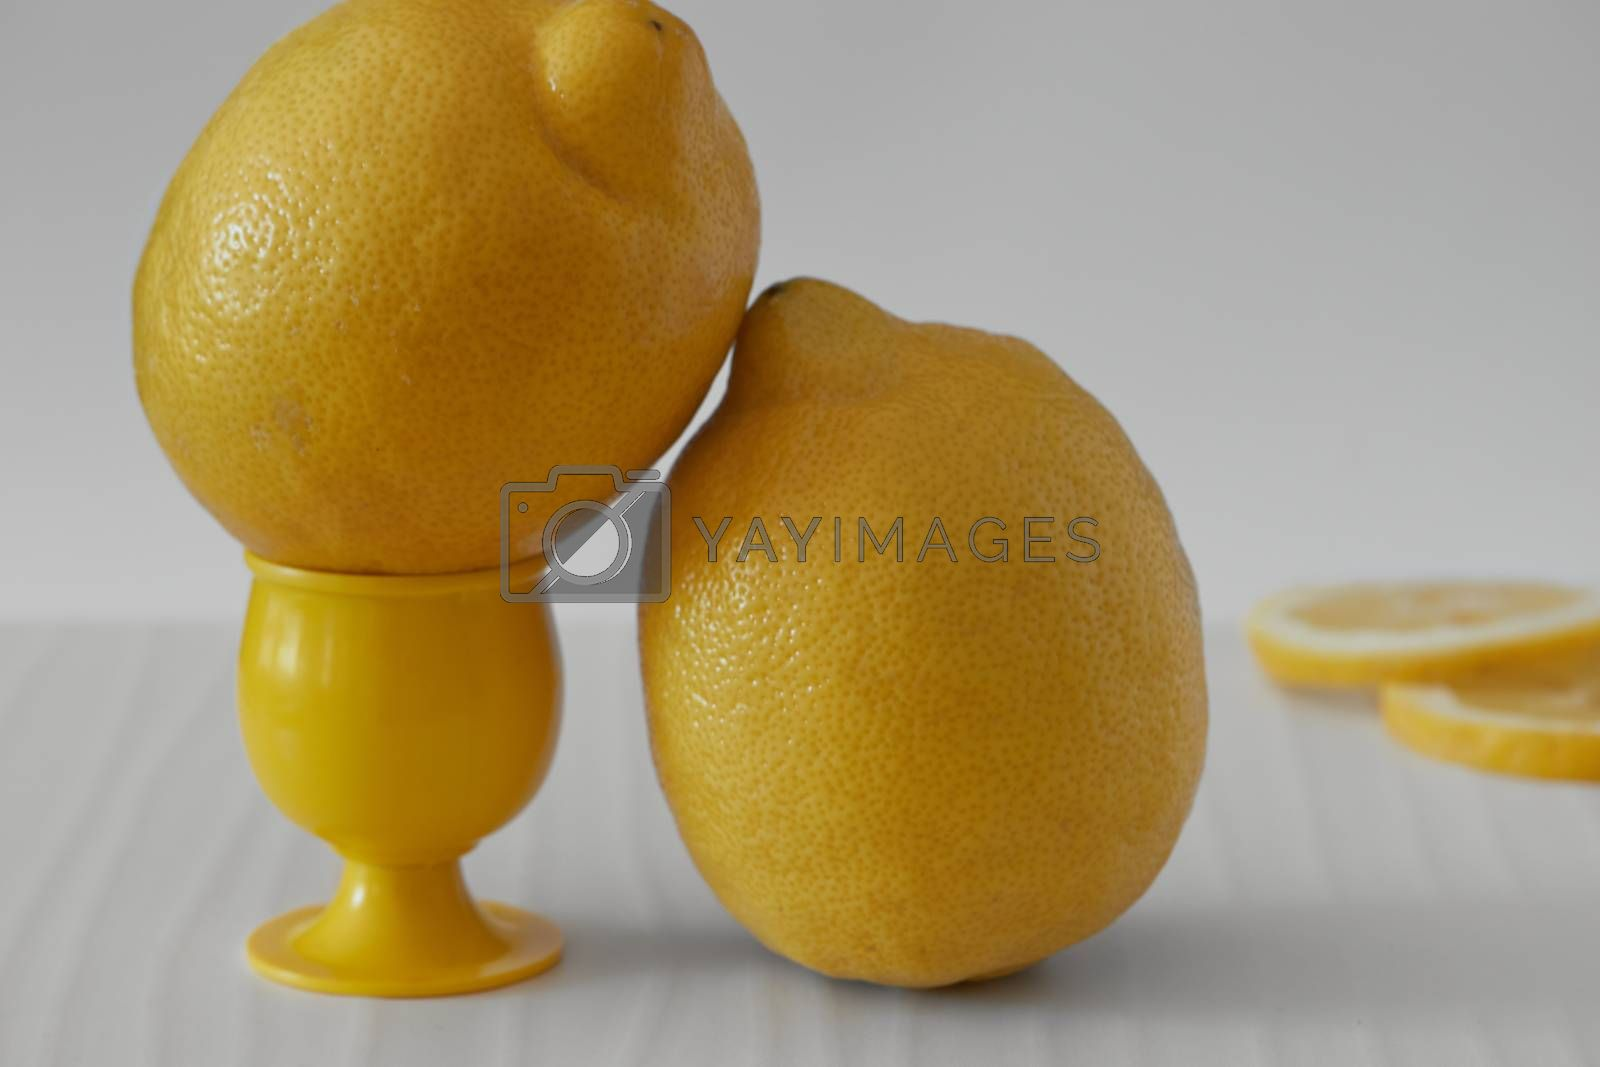 Several yellow sliced and whole lemons placed on a board with a light background